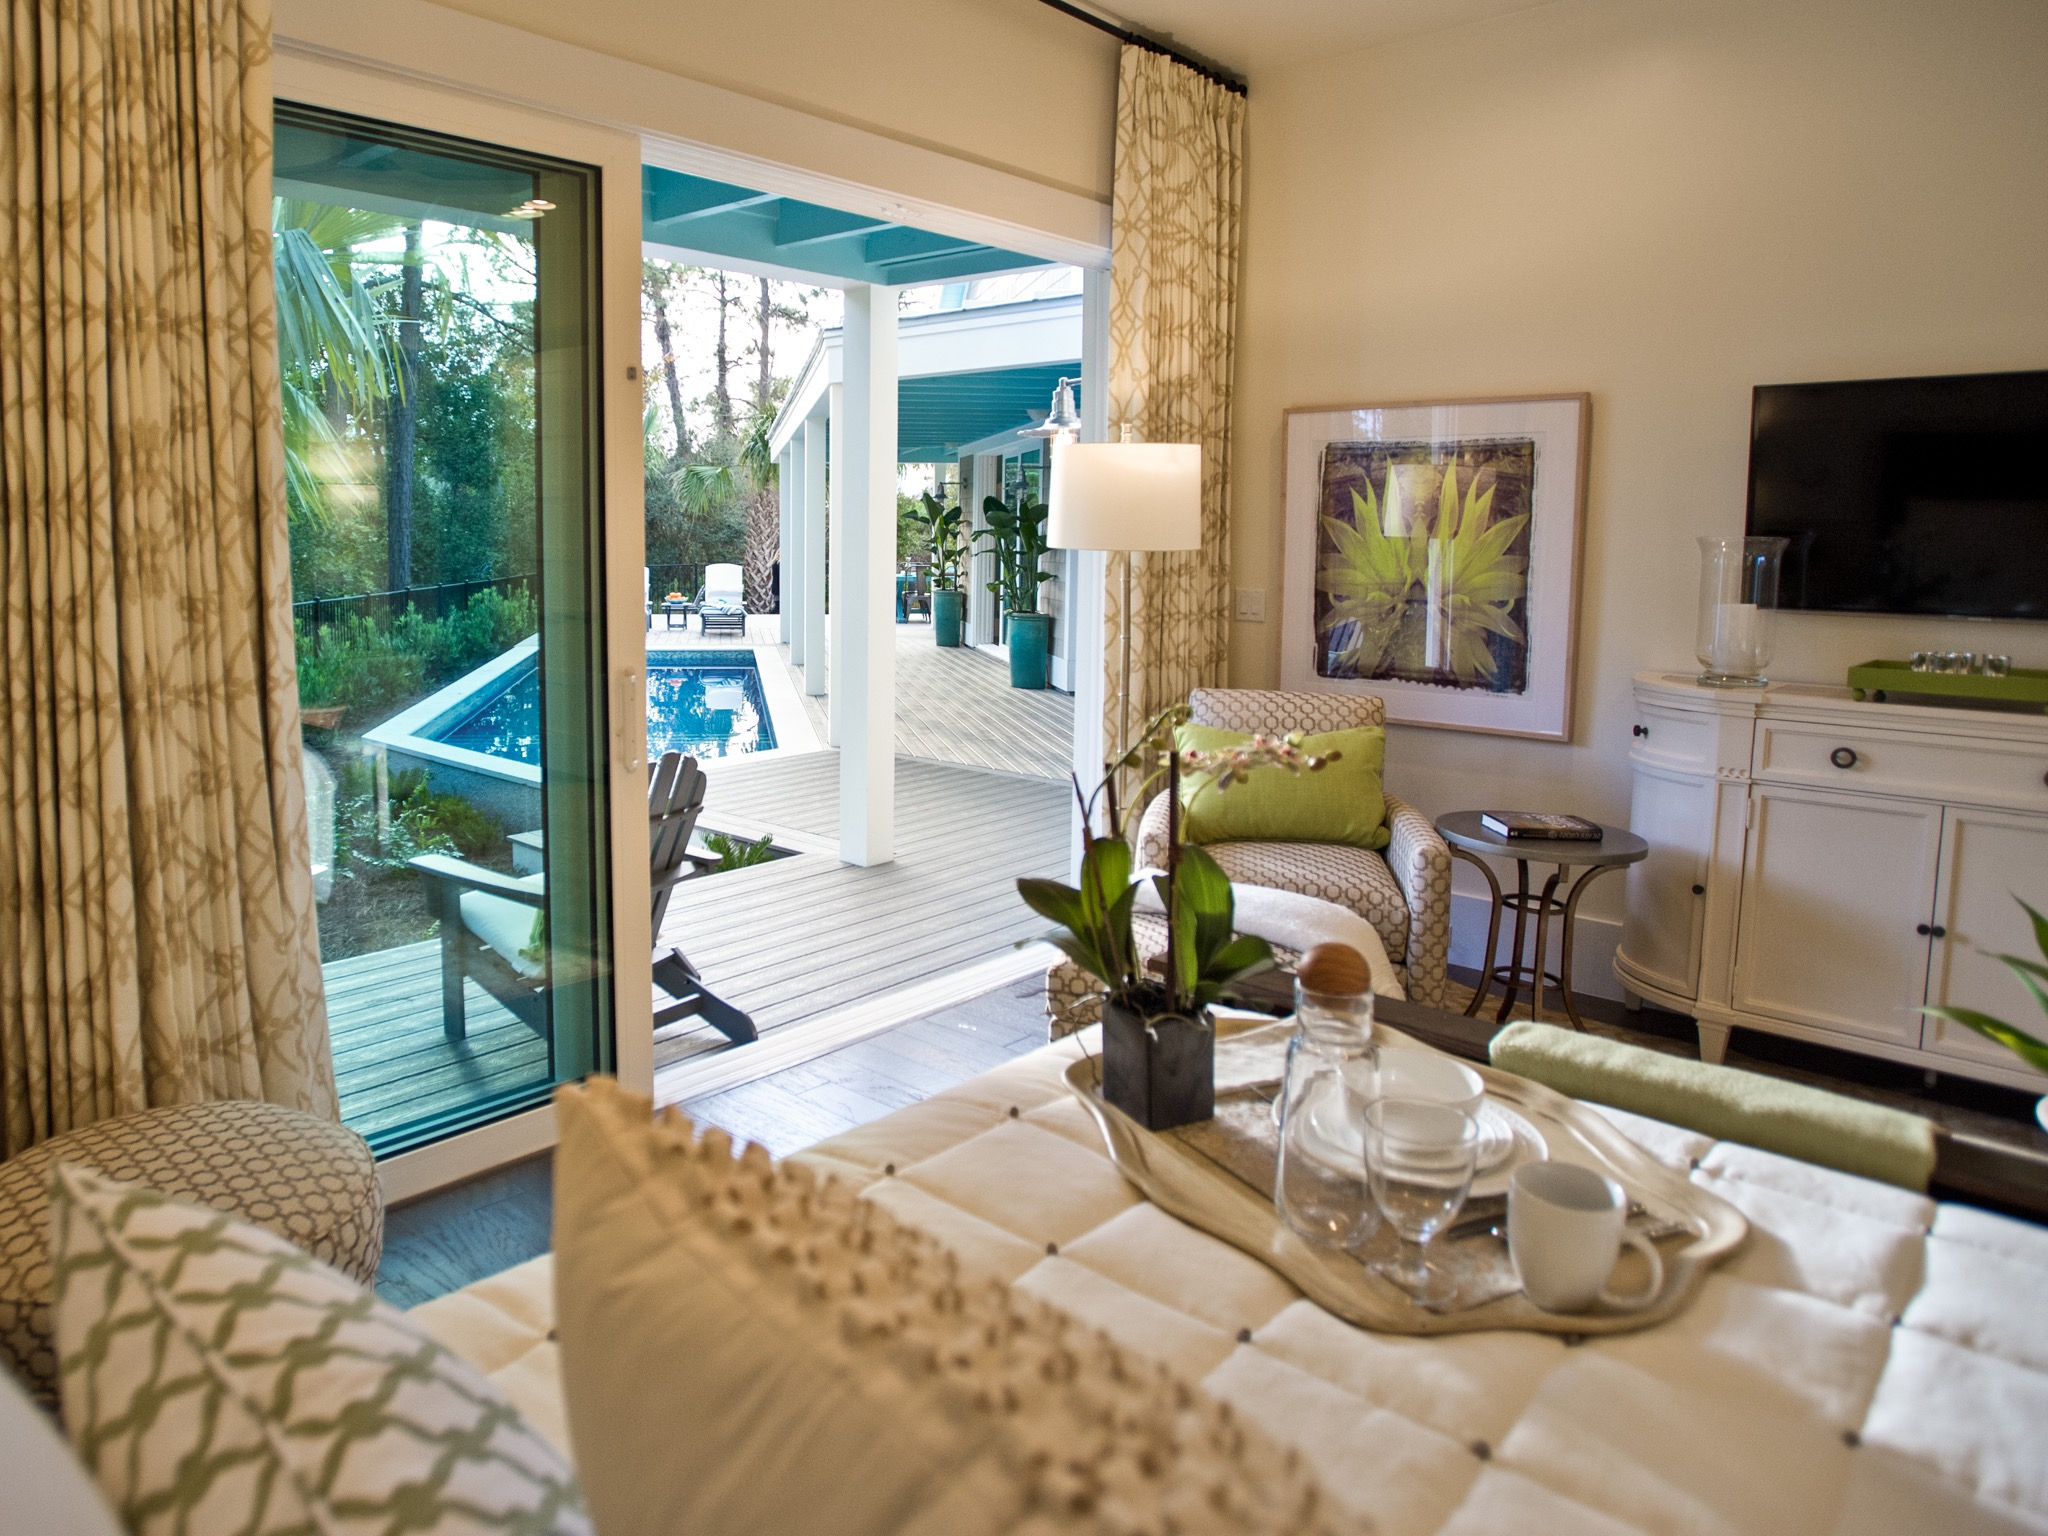 Luxurious Modern Master Bedroom With Sliding Door To Access Poolside Deck (Image 5 of 13)